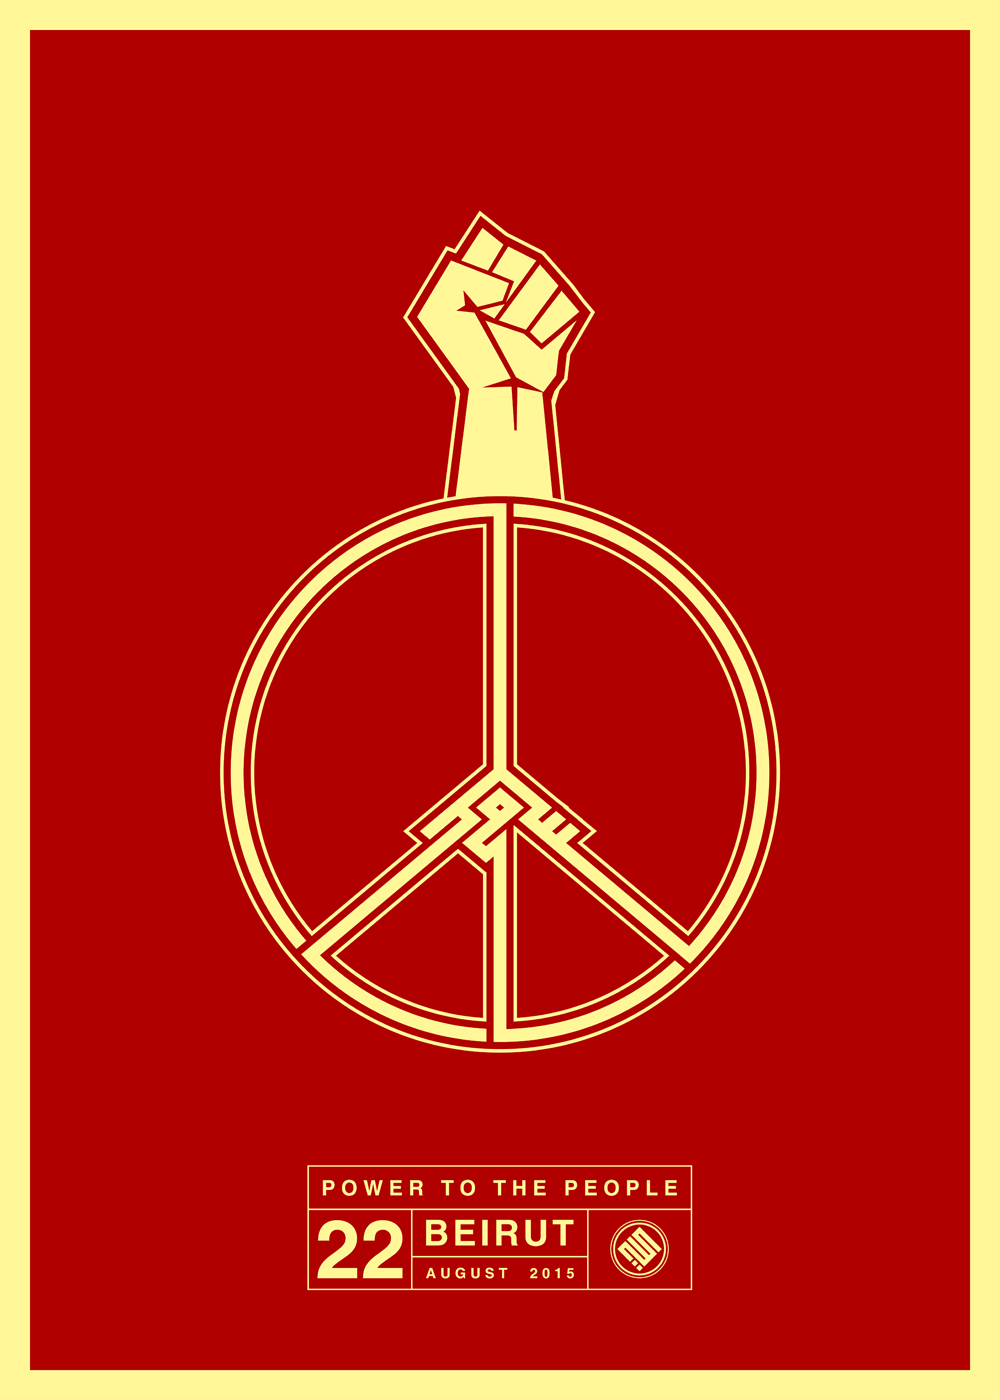 Beirut protests revolution posters red Propaganda Political posters arabic calligraphy Whale peace